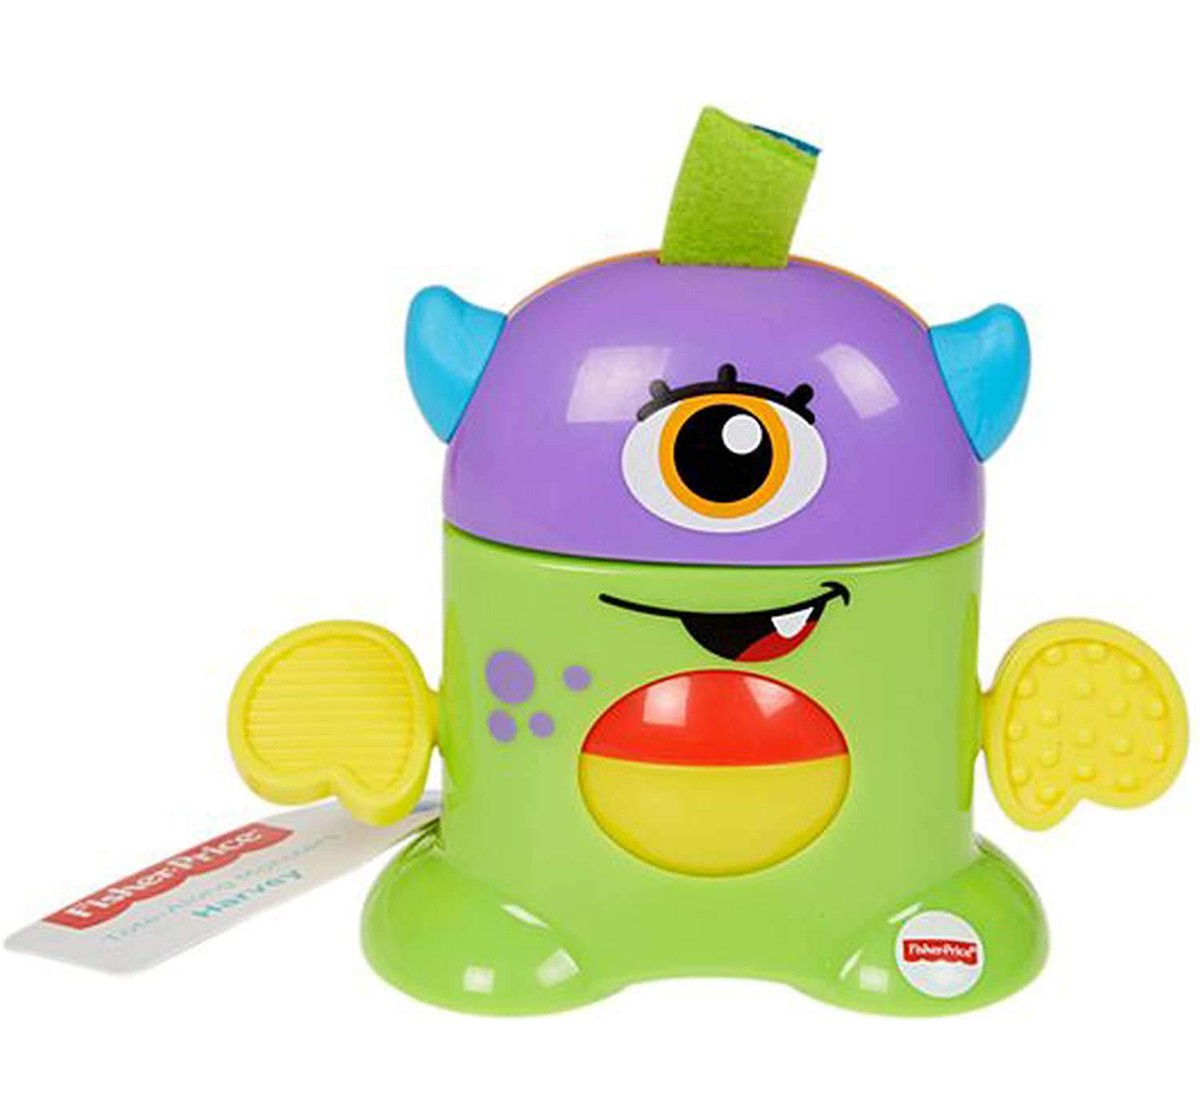 Fisher Price Tote - Along Monster Early Learner Toys for Kids age 6M+